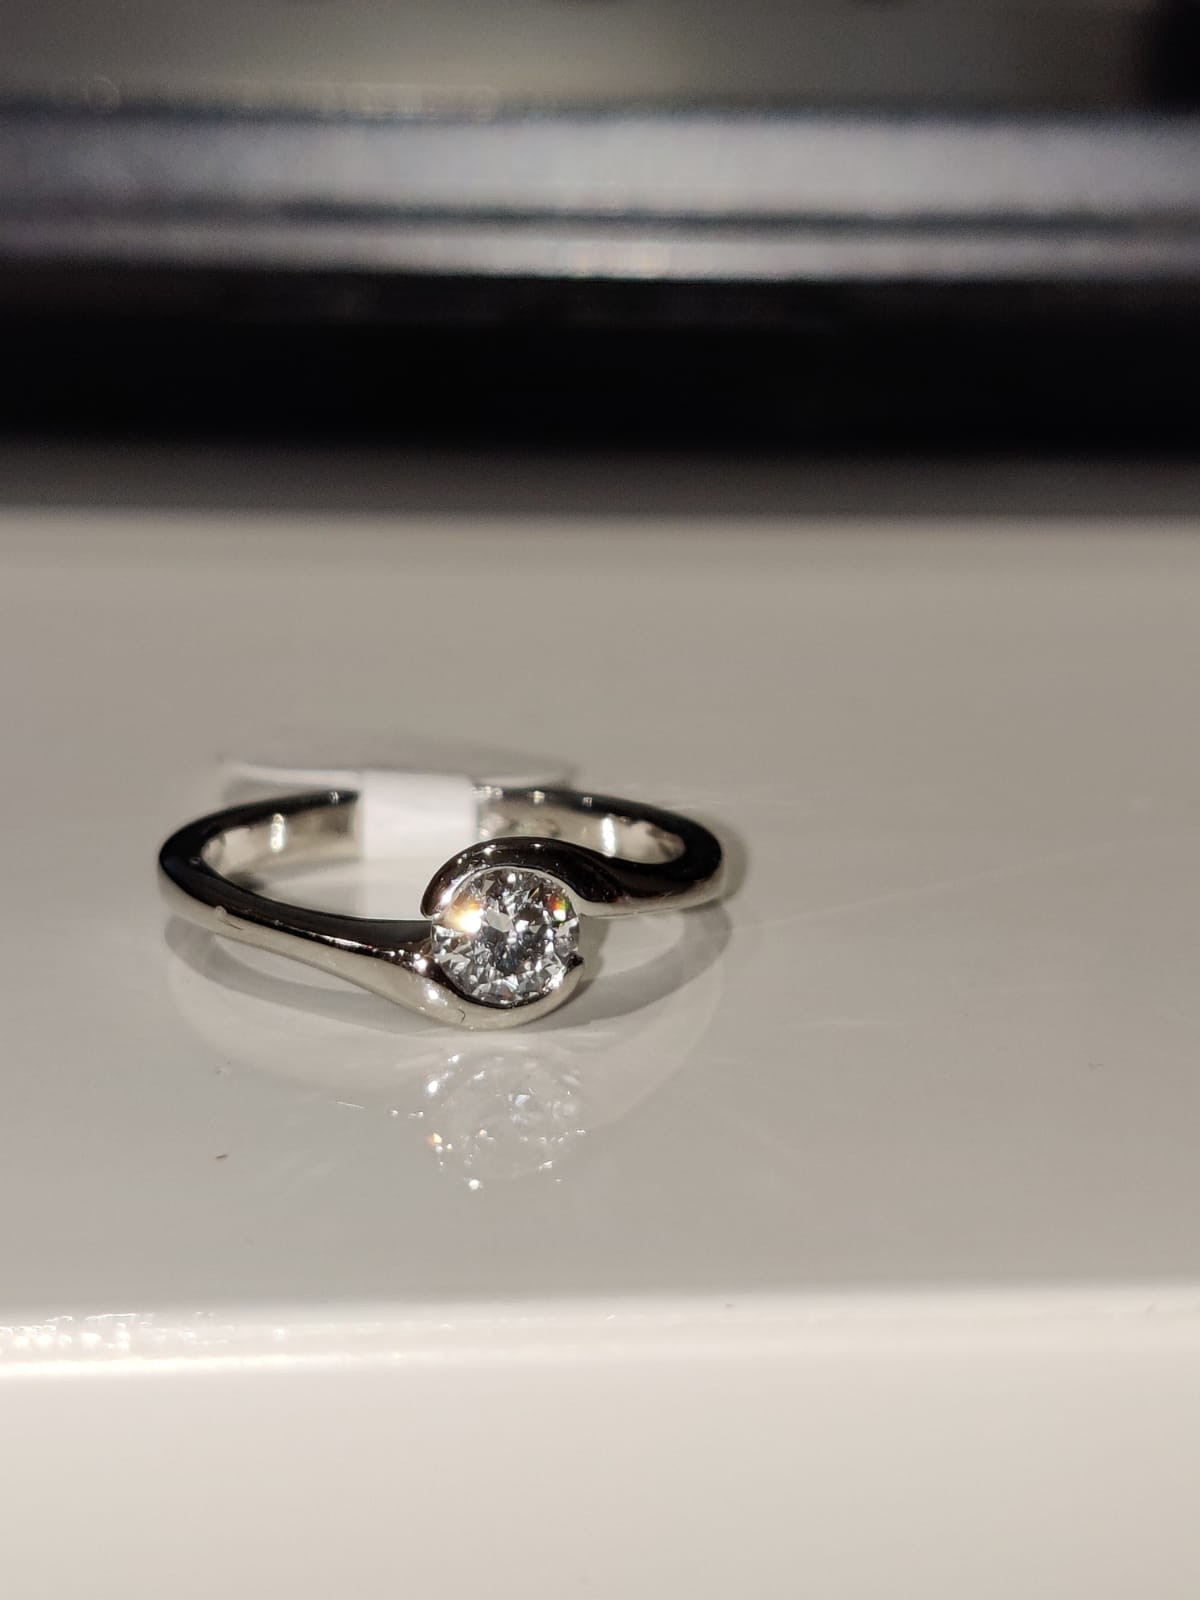 Platinum ring with 0.30ct diamond solitaire (GIA certification), weight 3.3g and size H - Image 2 of 2